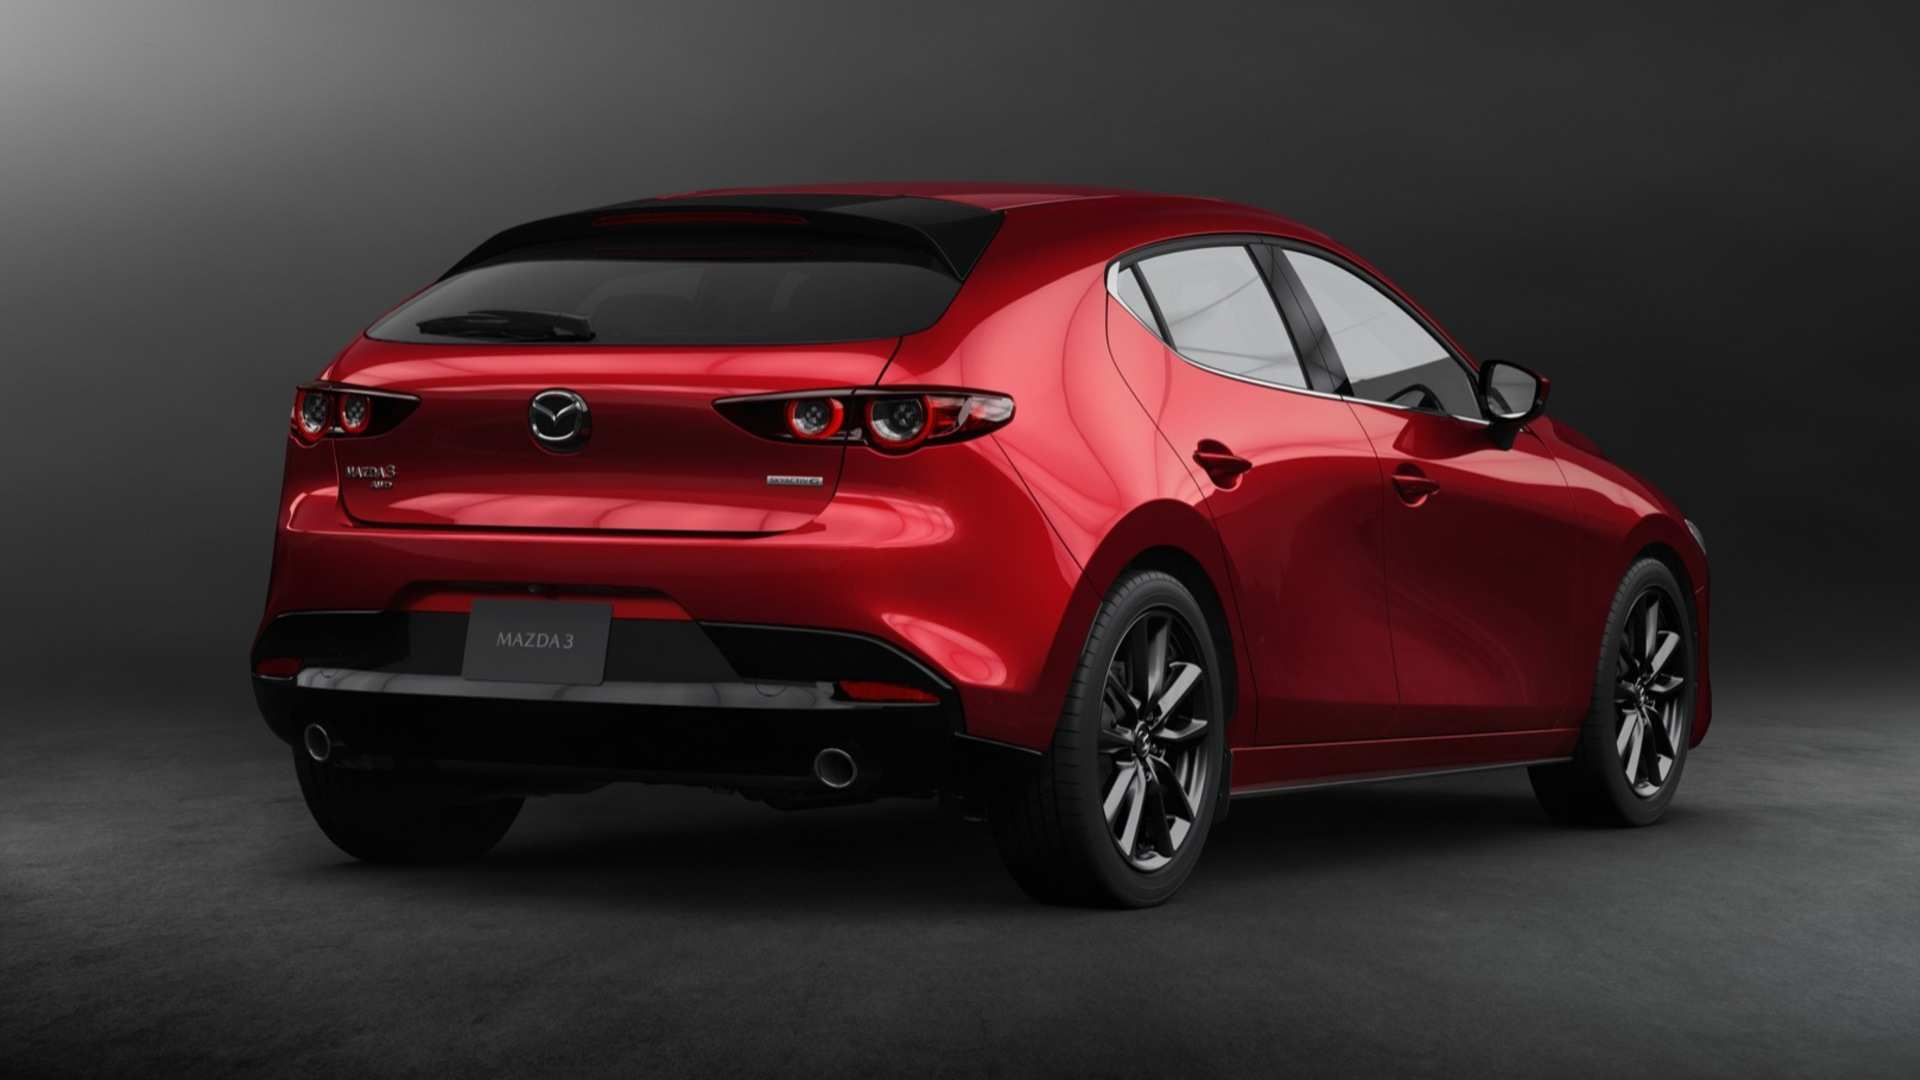 38 New 2020 Mazdaspeed 3 Performance